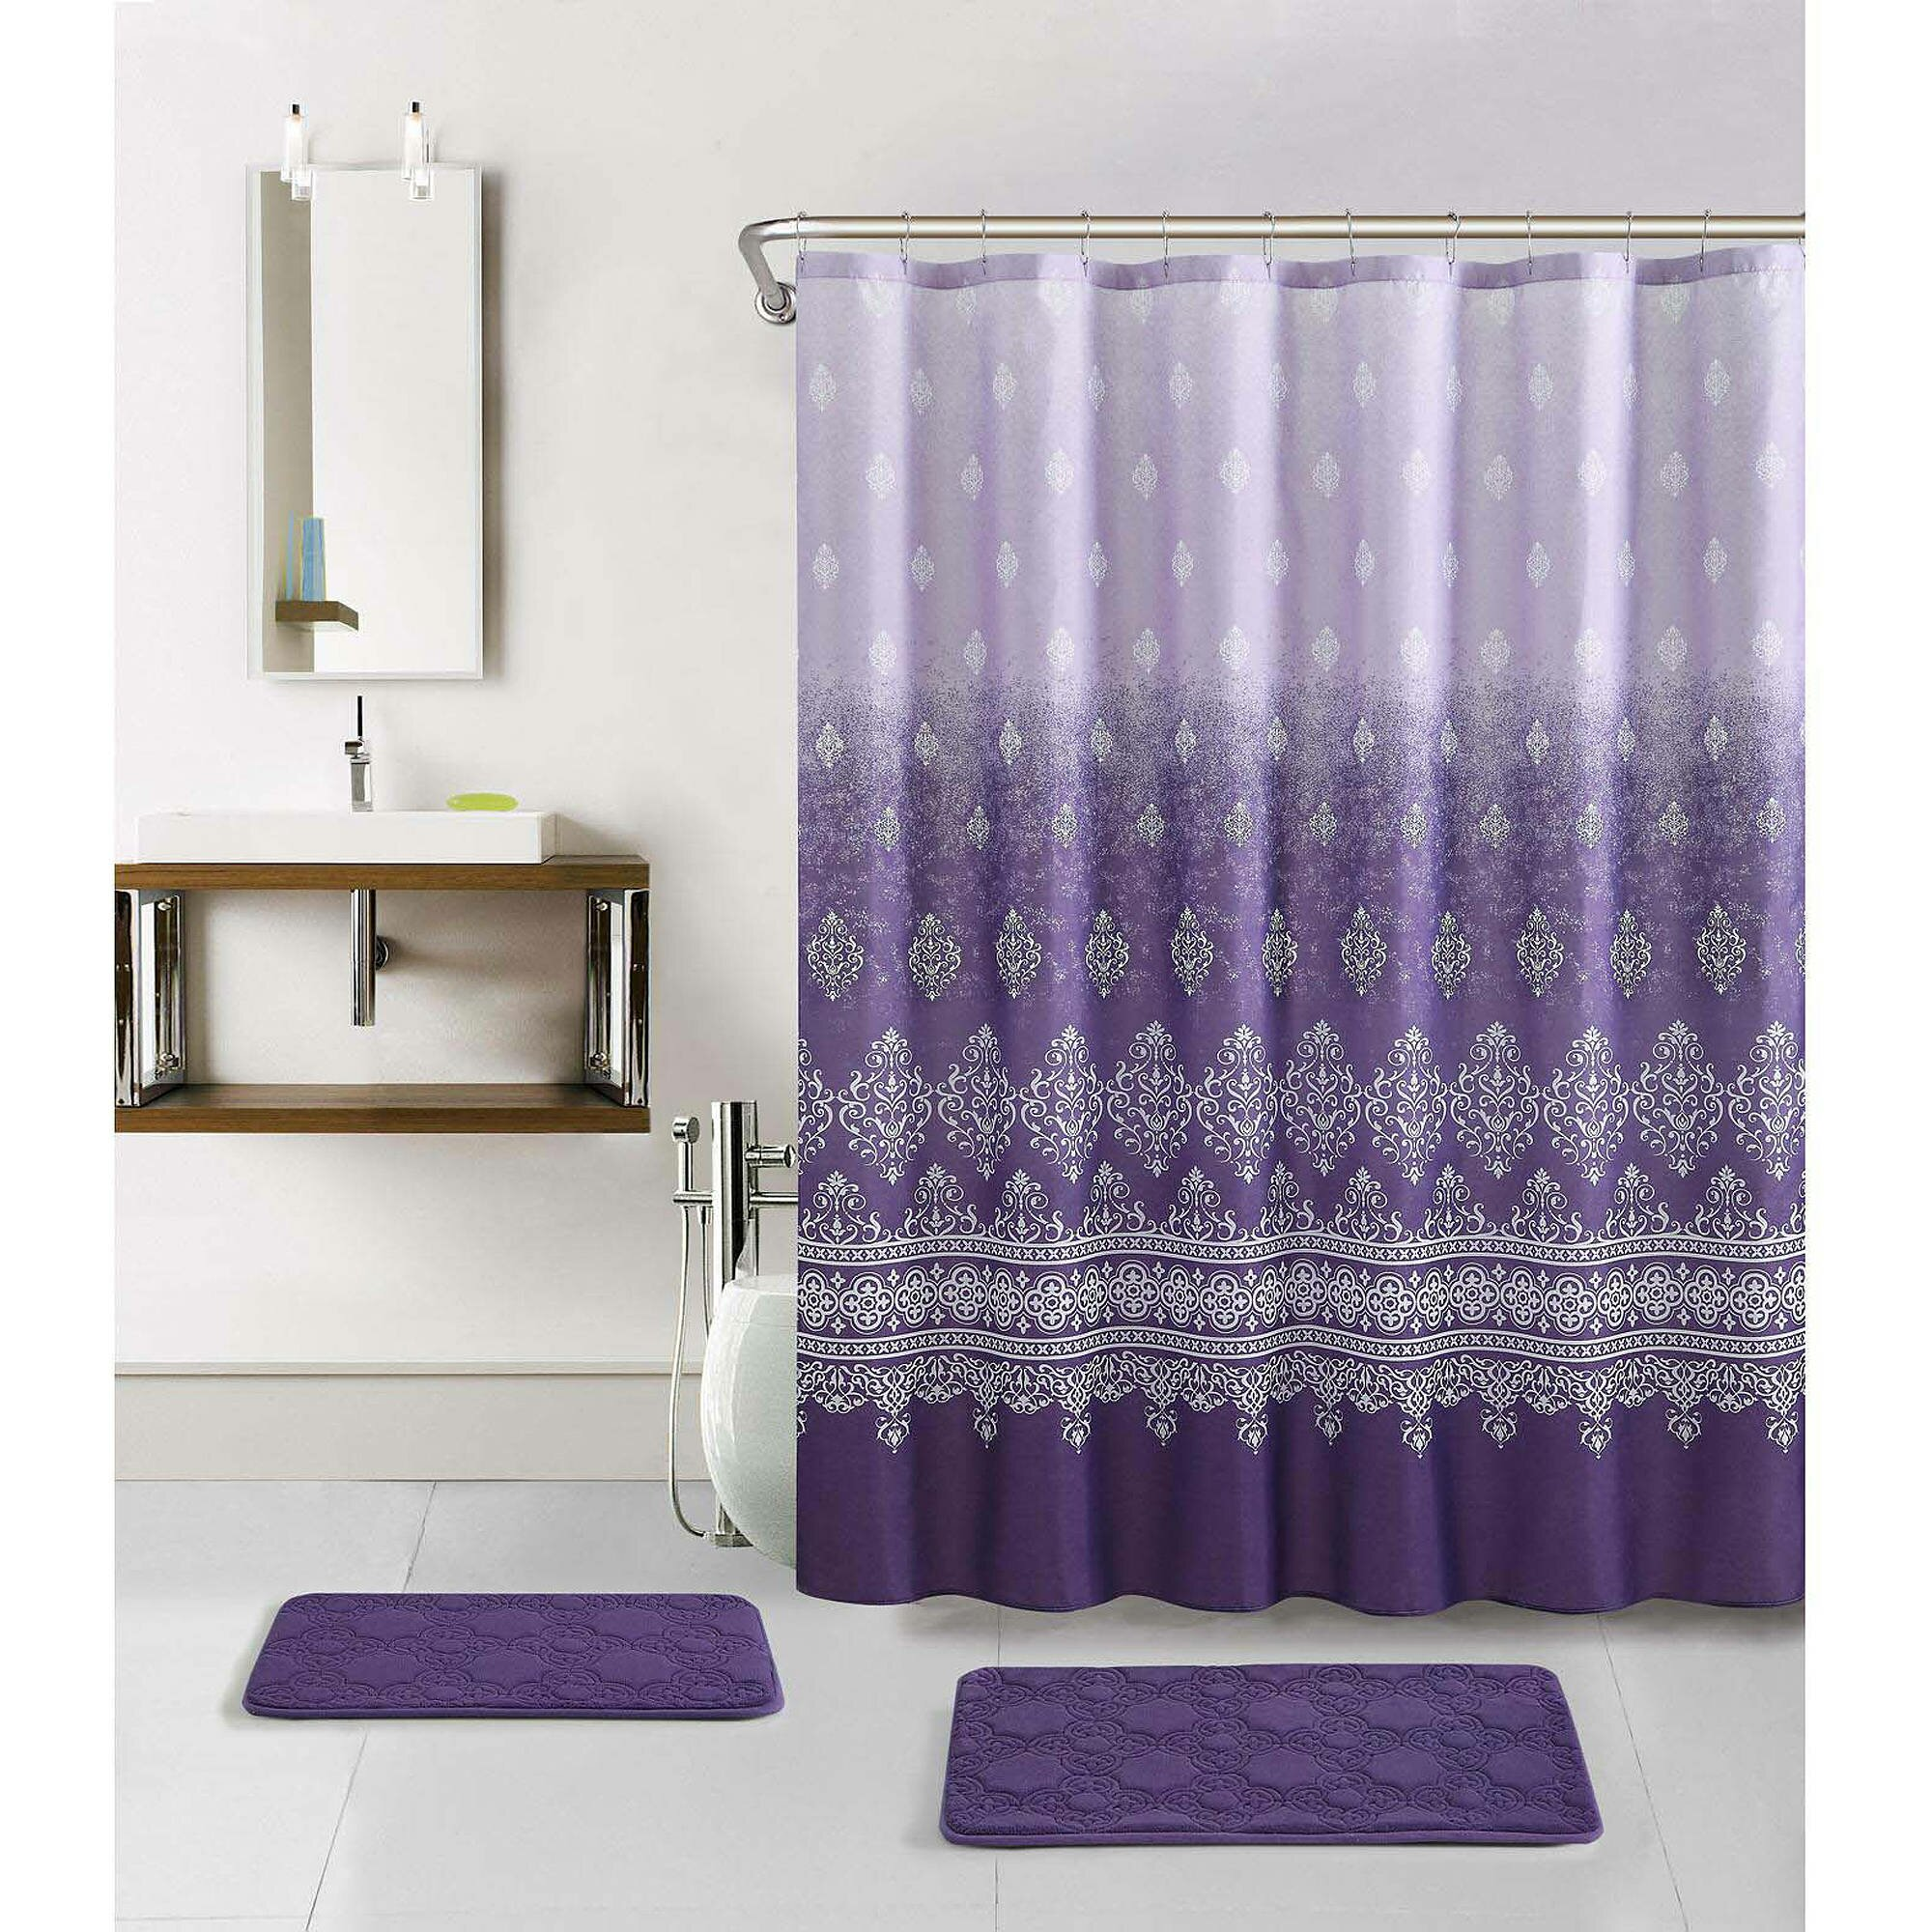 Bathroom Curtains curtain: shower curtain rings walmart | walmart shower curtain